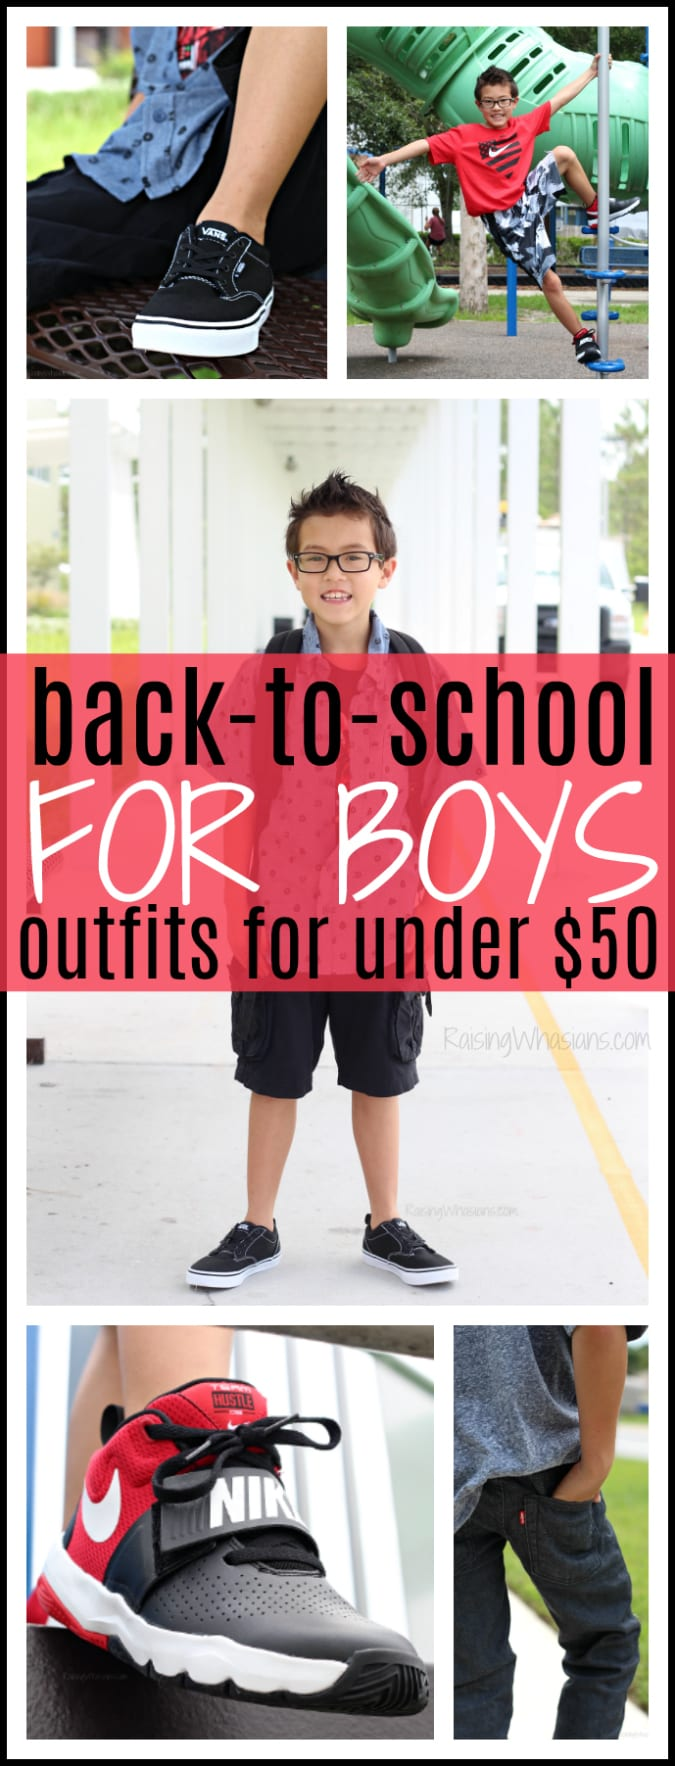 Back to school outfits for boys under 50